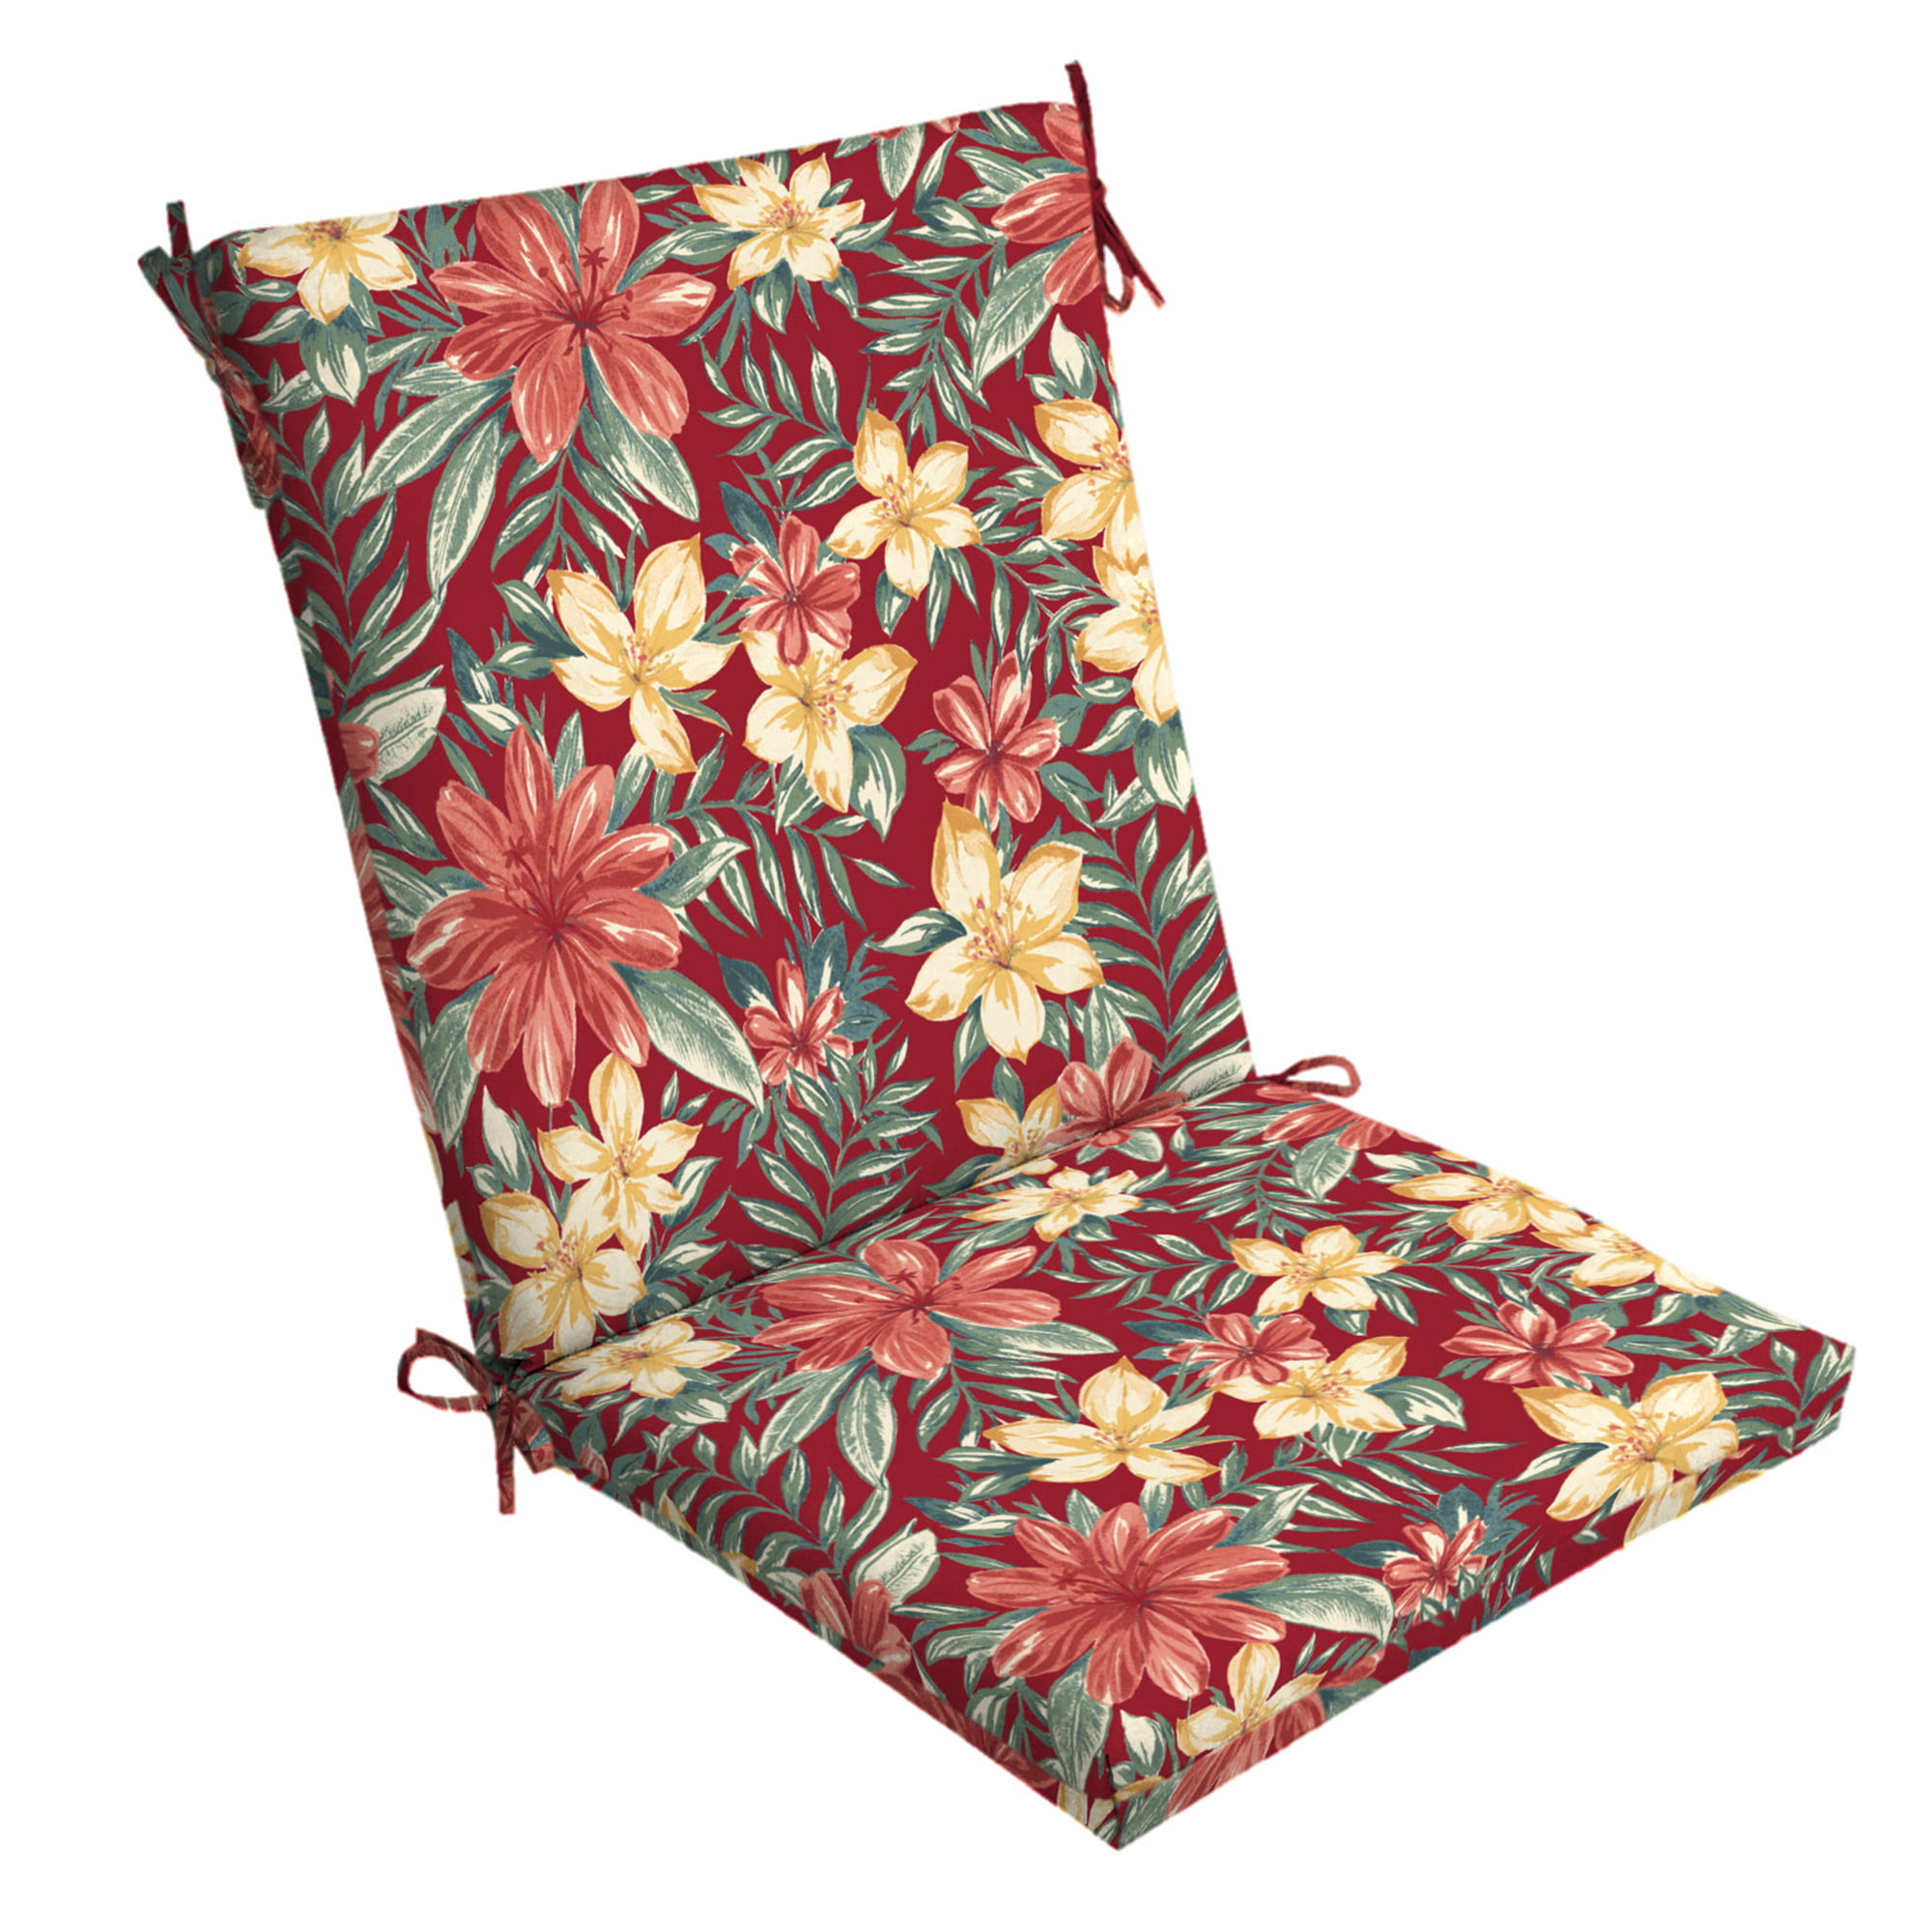 Arden Selections Ruby Clarissa Tropical 44 X 20 In Outdoor Chair